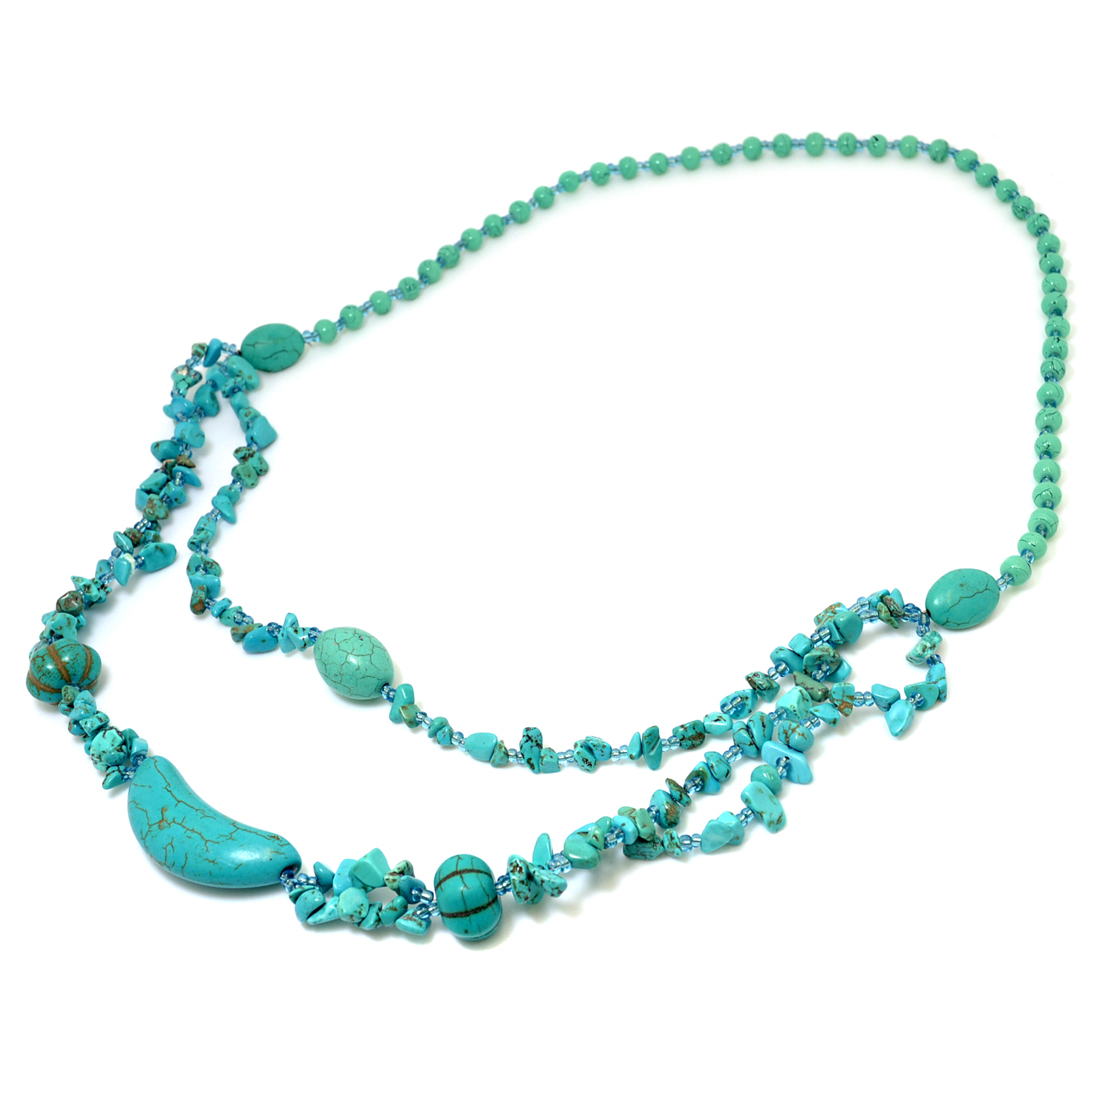 2-Strand Turquoise Chip Beaded Pendant Necklace